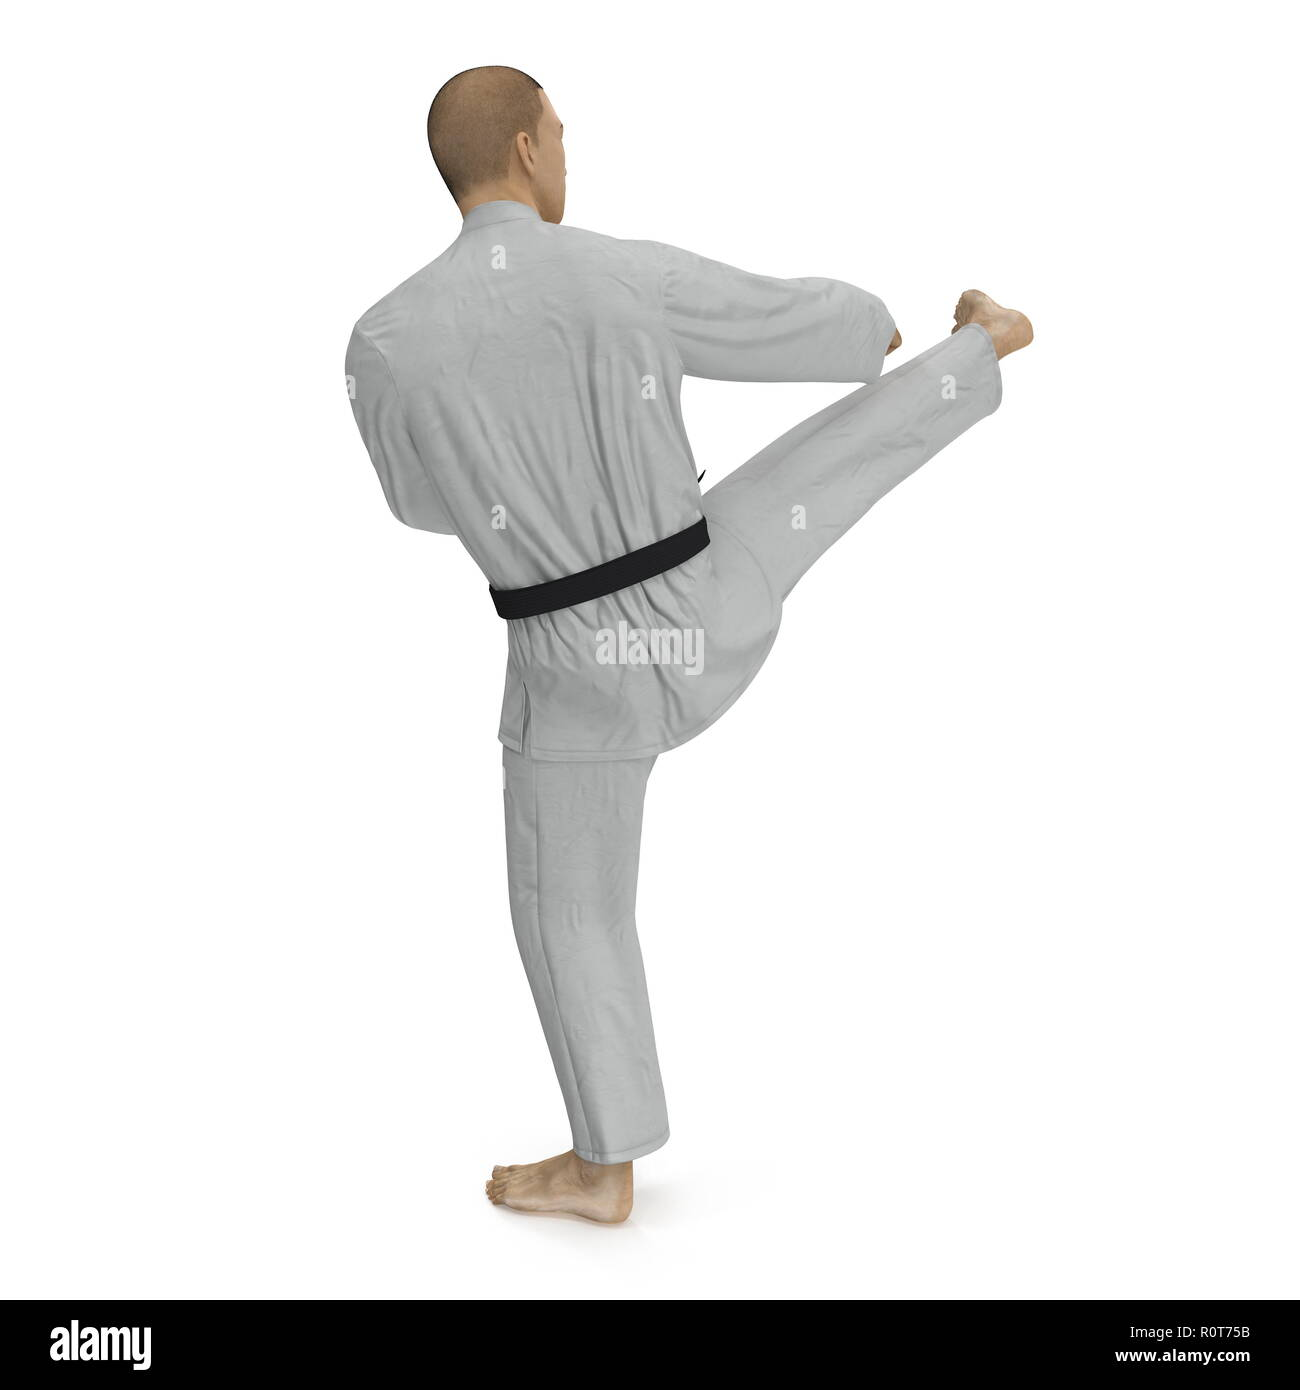 Fighting Pose High Resolution Stock Photography And Images Alamy